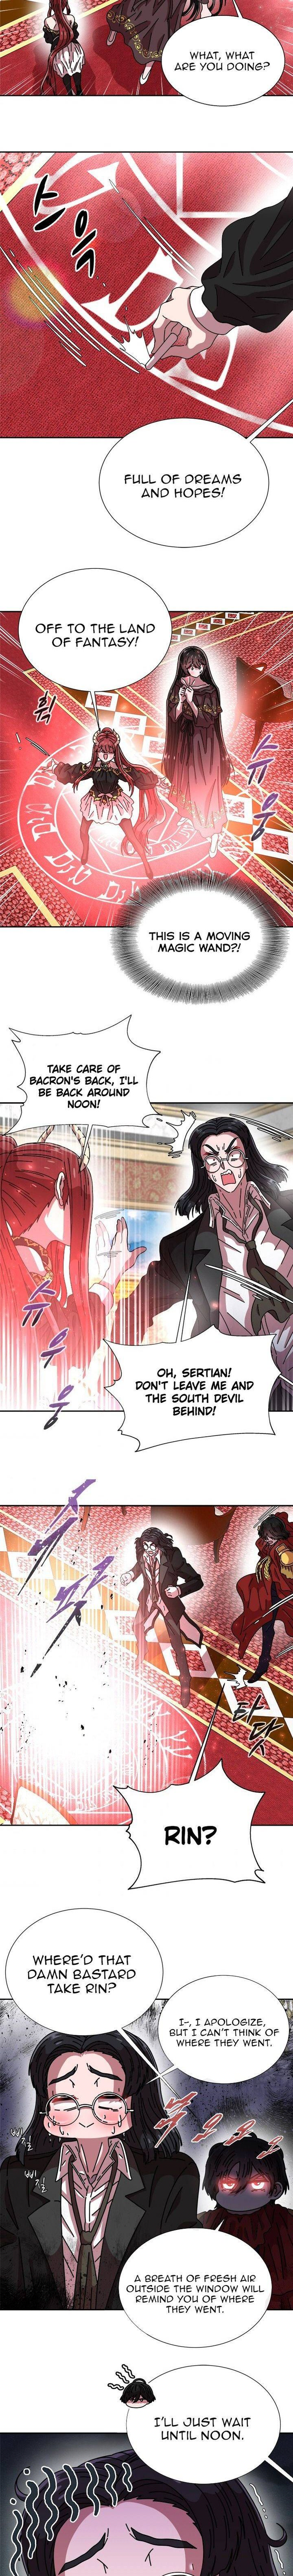 i_was_born_as_the_demon_lords_daughter_64_10